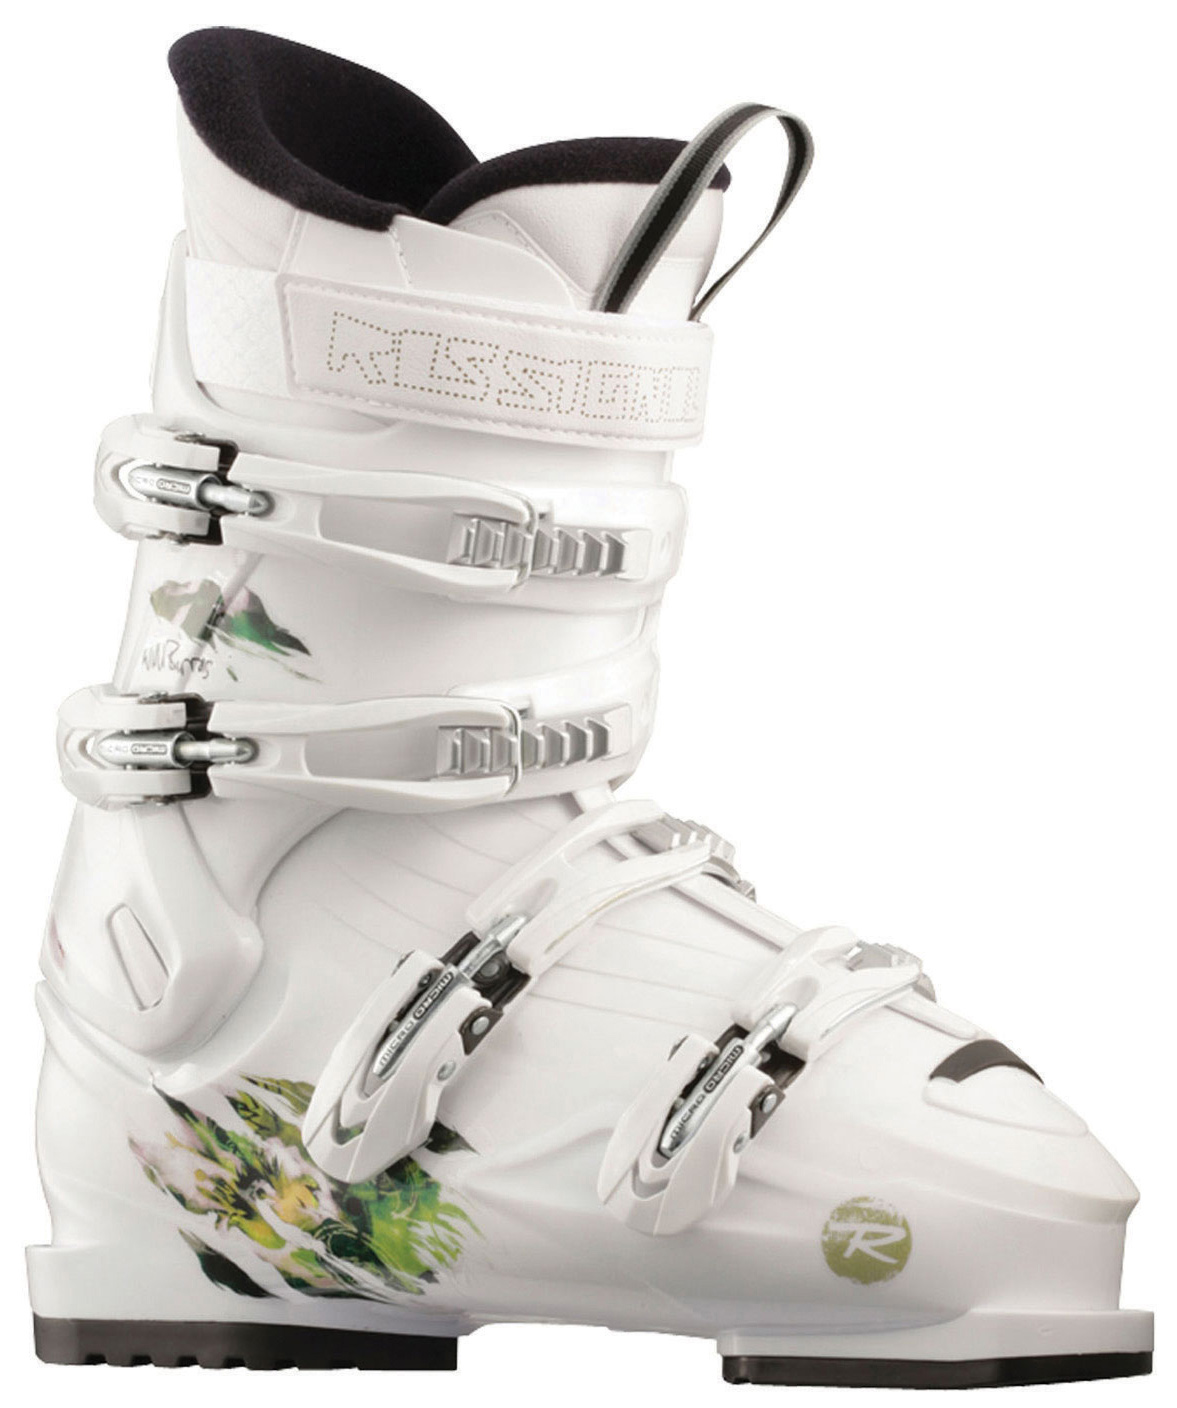 Ski The Rossignol SAS ski Boot is a softer flexing four buckle boot for Jibbers and all-mountain riders alike.Key Features of the Rossignol SAS Ski Boots:  Flex: 70/60  Last: 104mm  Intermediate to Expert Park and Freeriders - $143.95